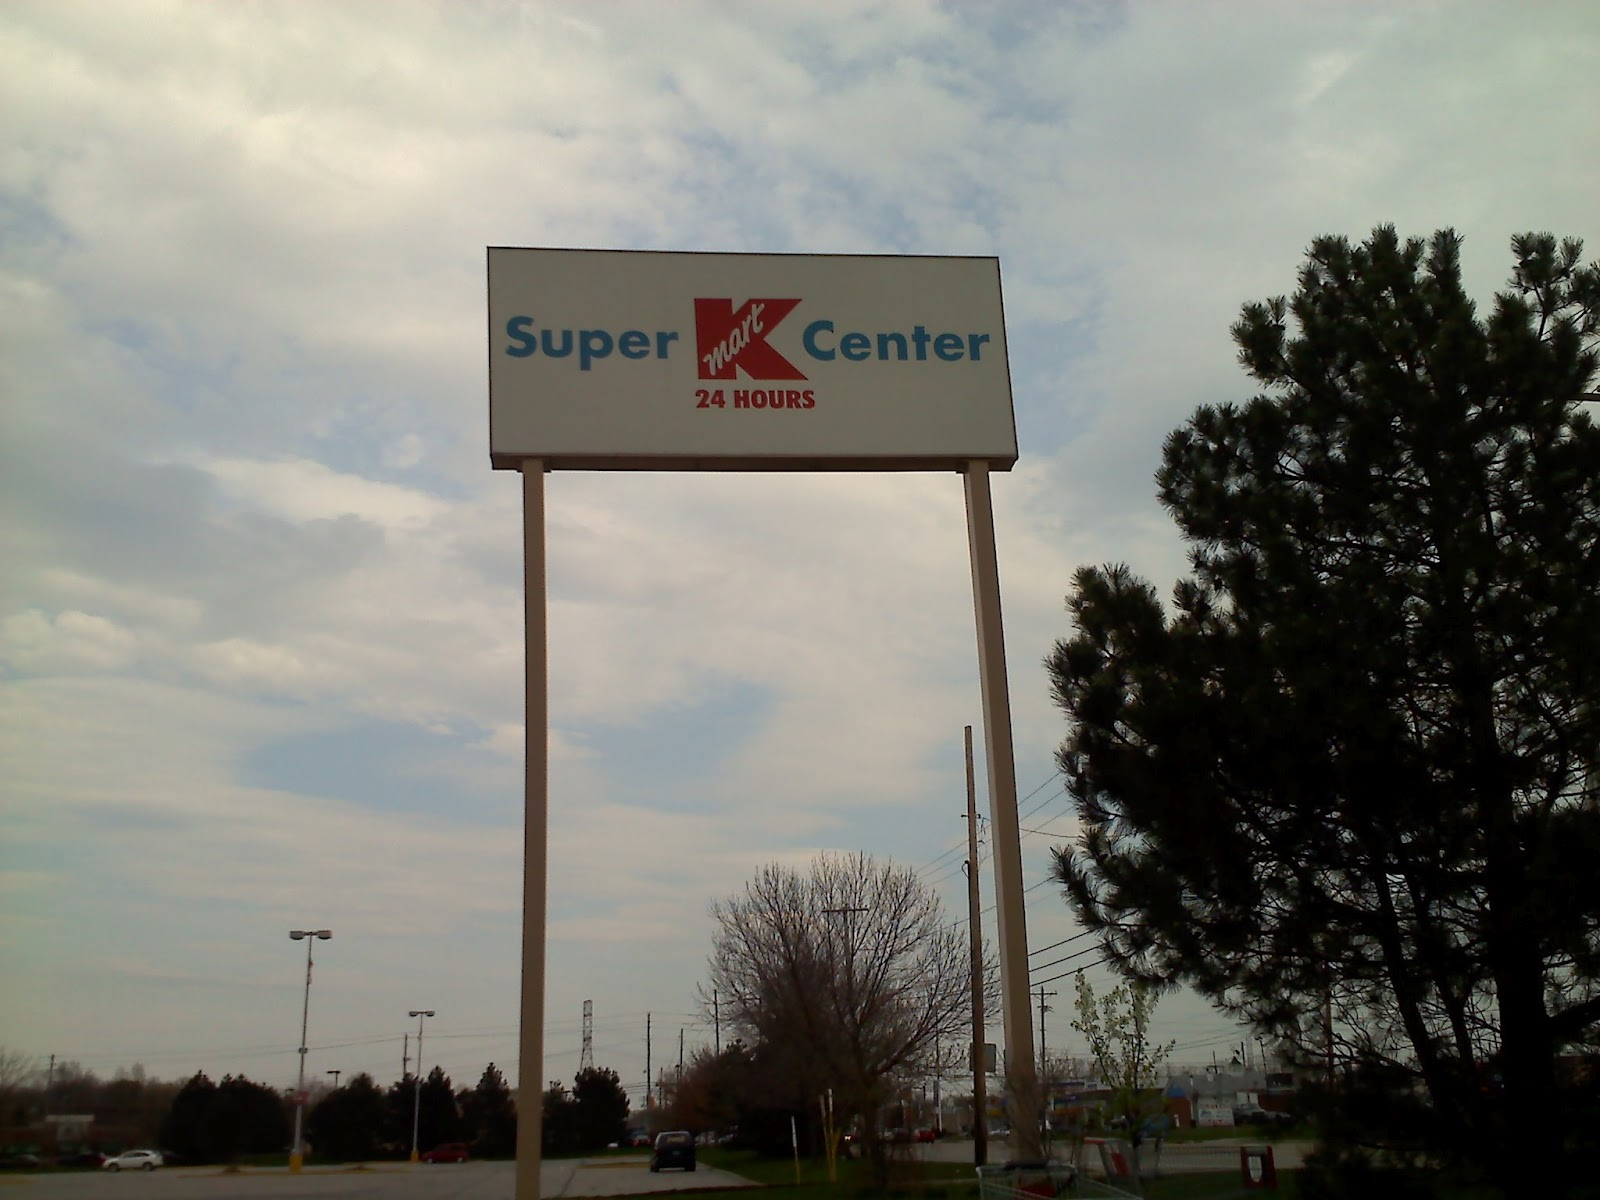 Dead and Dying retail: Lorain, Ohio Kmart Supercenter